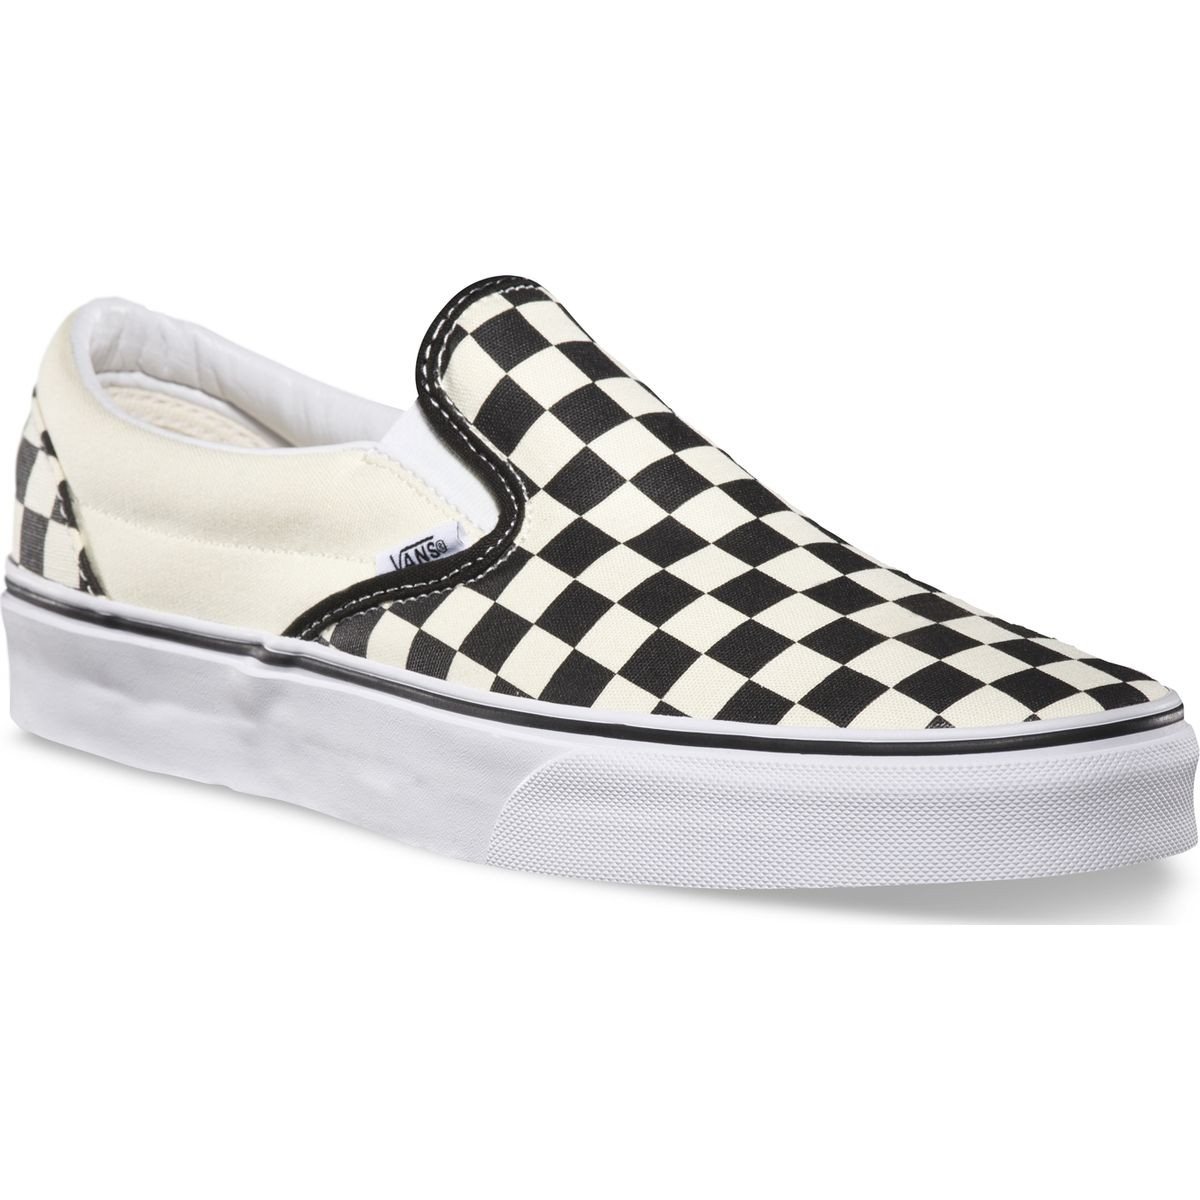 3d1d78f3d9e9 Vans Classic Slip-On Checkerboard Youth Shoes - Black White - 5.0